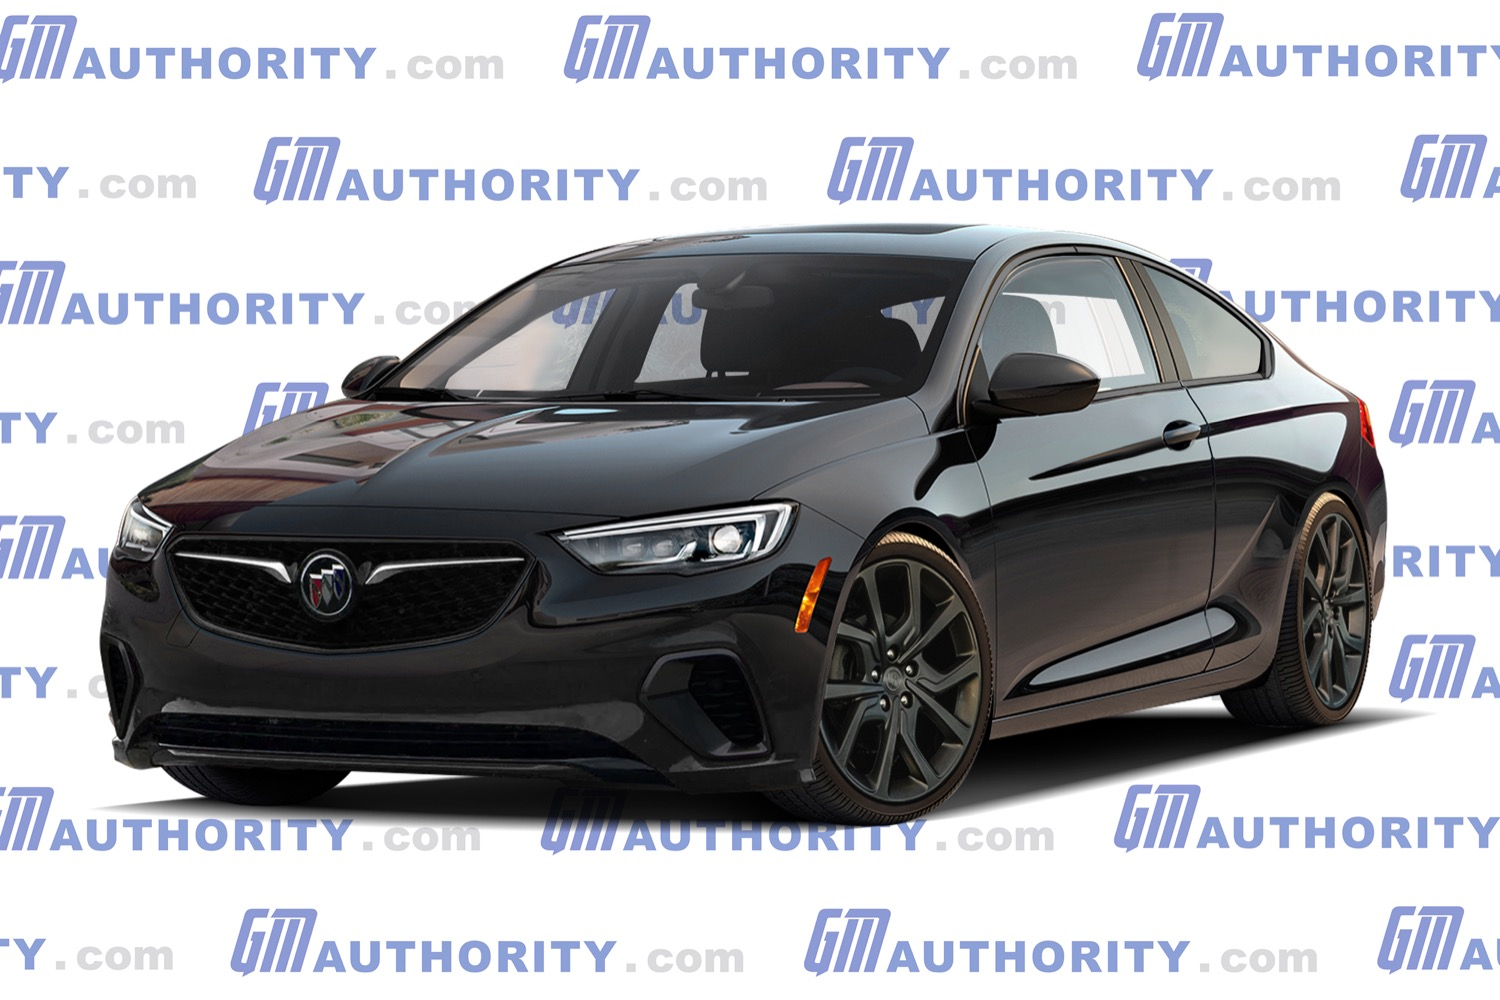 Modern Buick Regal Gnx Rendered | Gm Authority 2022 Buick Regal Specs, Price, 0-60